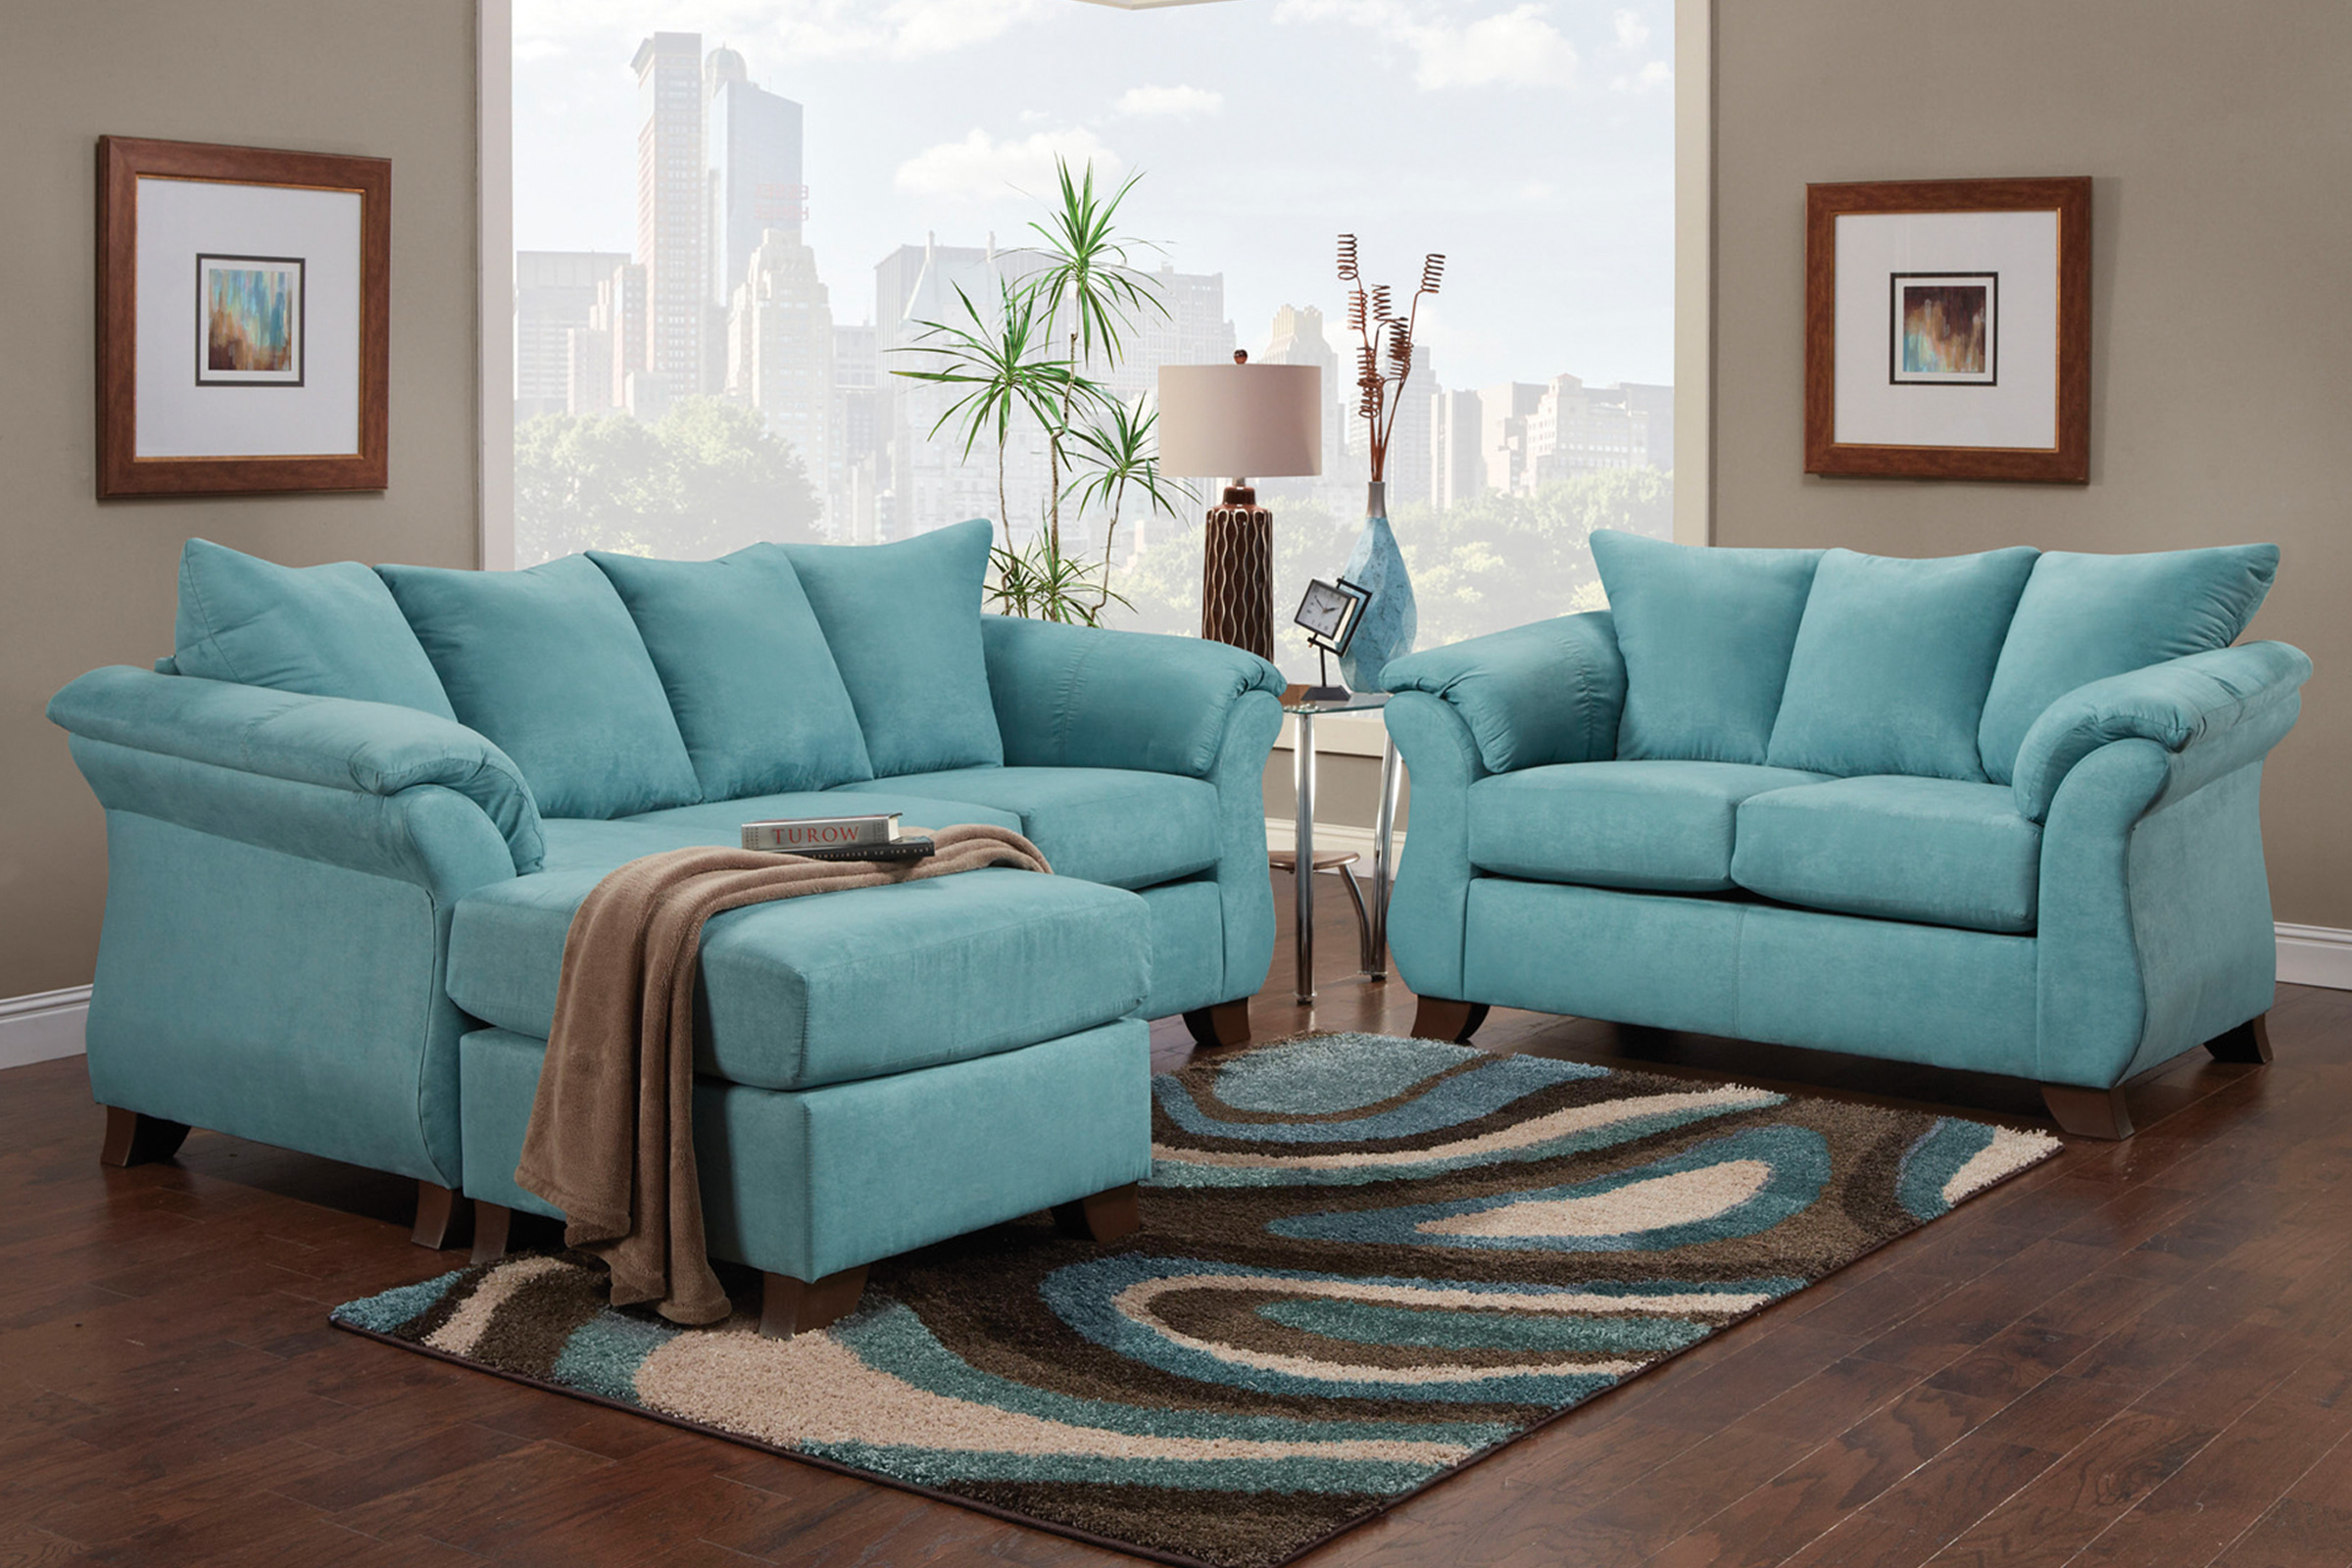 macys amazon stores power fabric reclining occasional best teal room classic ashley chairs sectional sofa me chair jedd living cheap full size office collection furniture of near